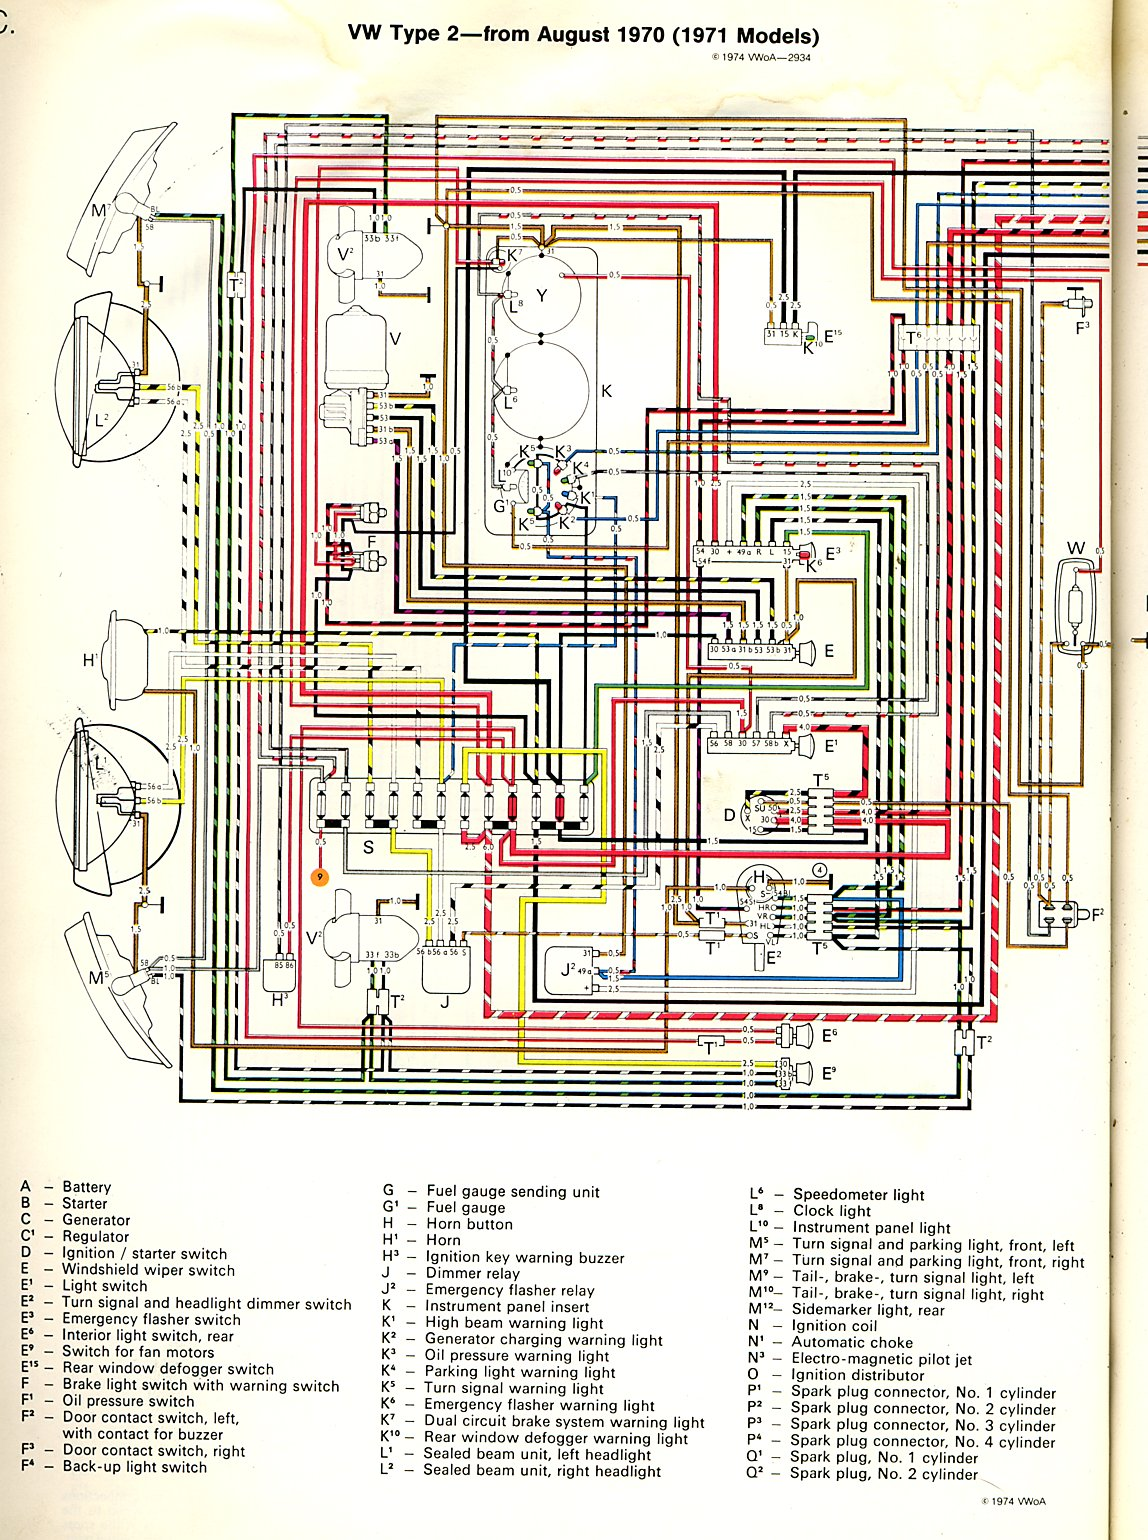 baybus_71a thesamba com type 2 wiring diagrams 1978 vw bus fuse box diagram at mifinder.co